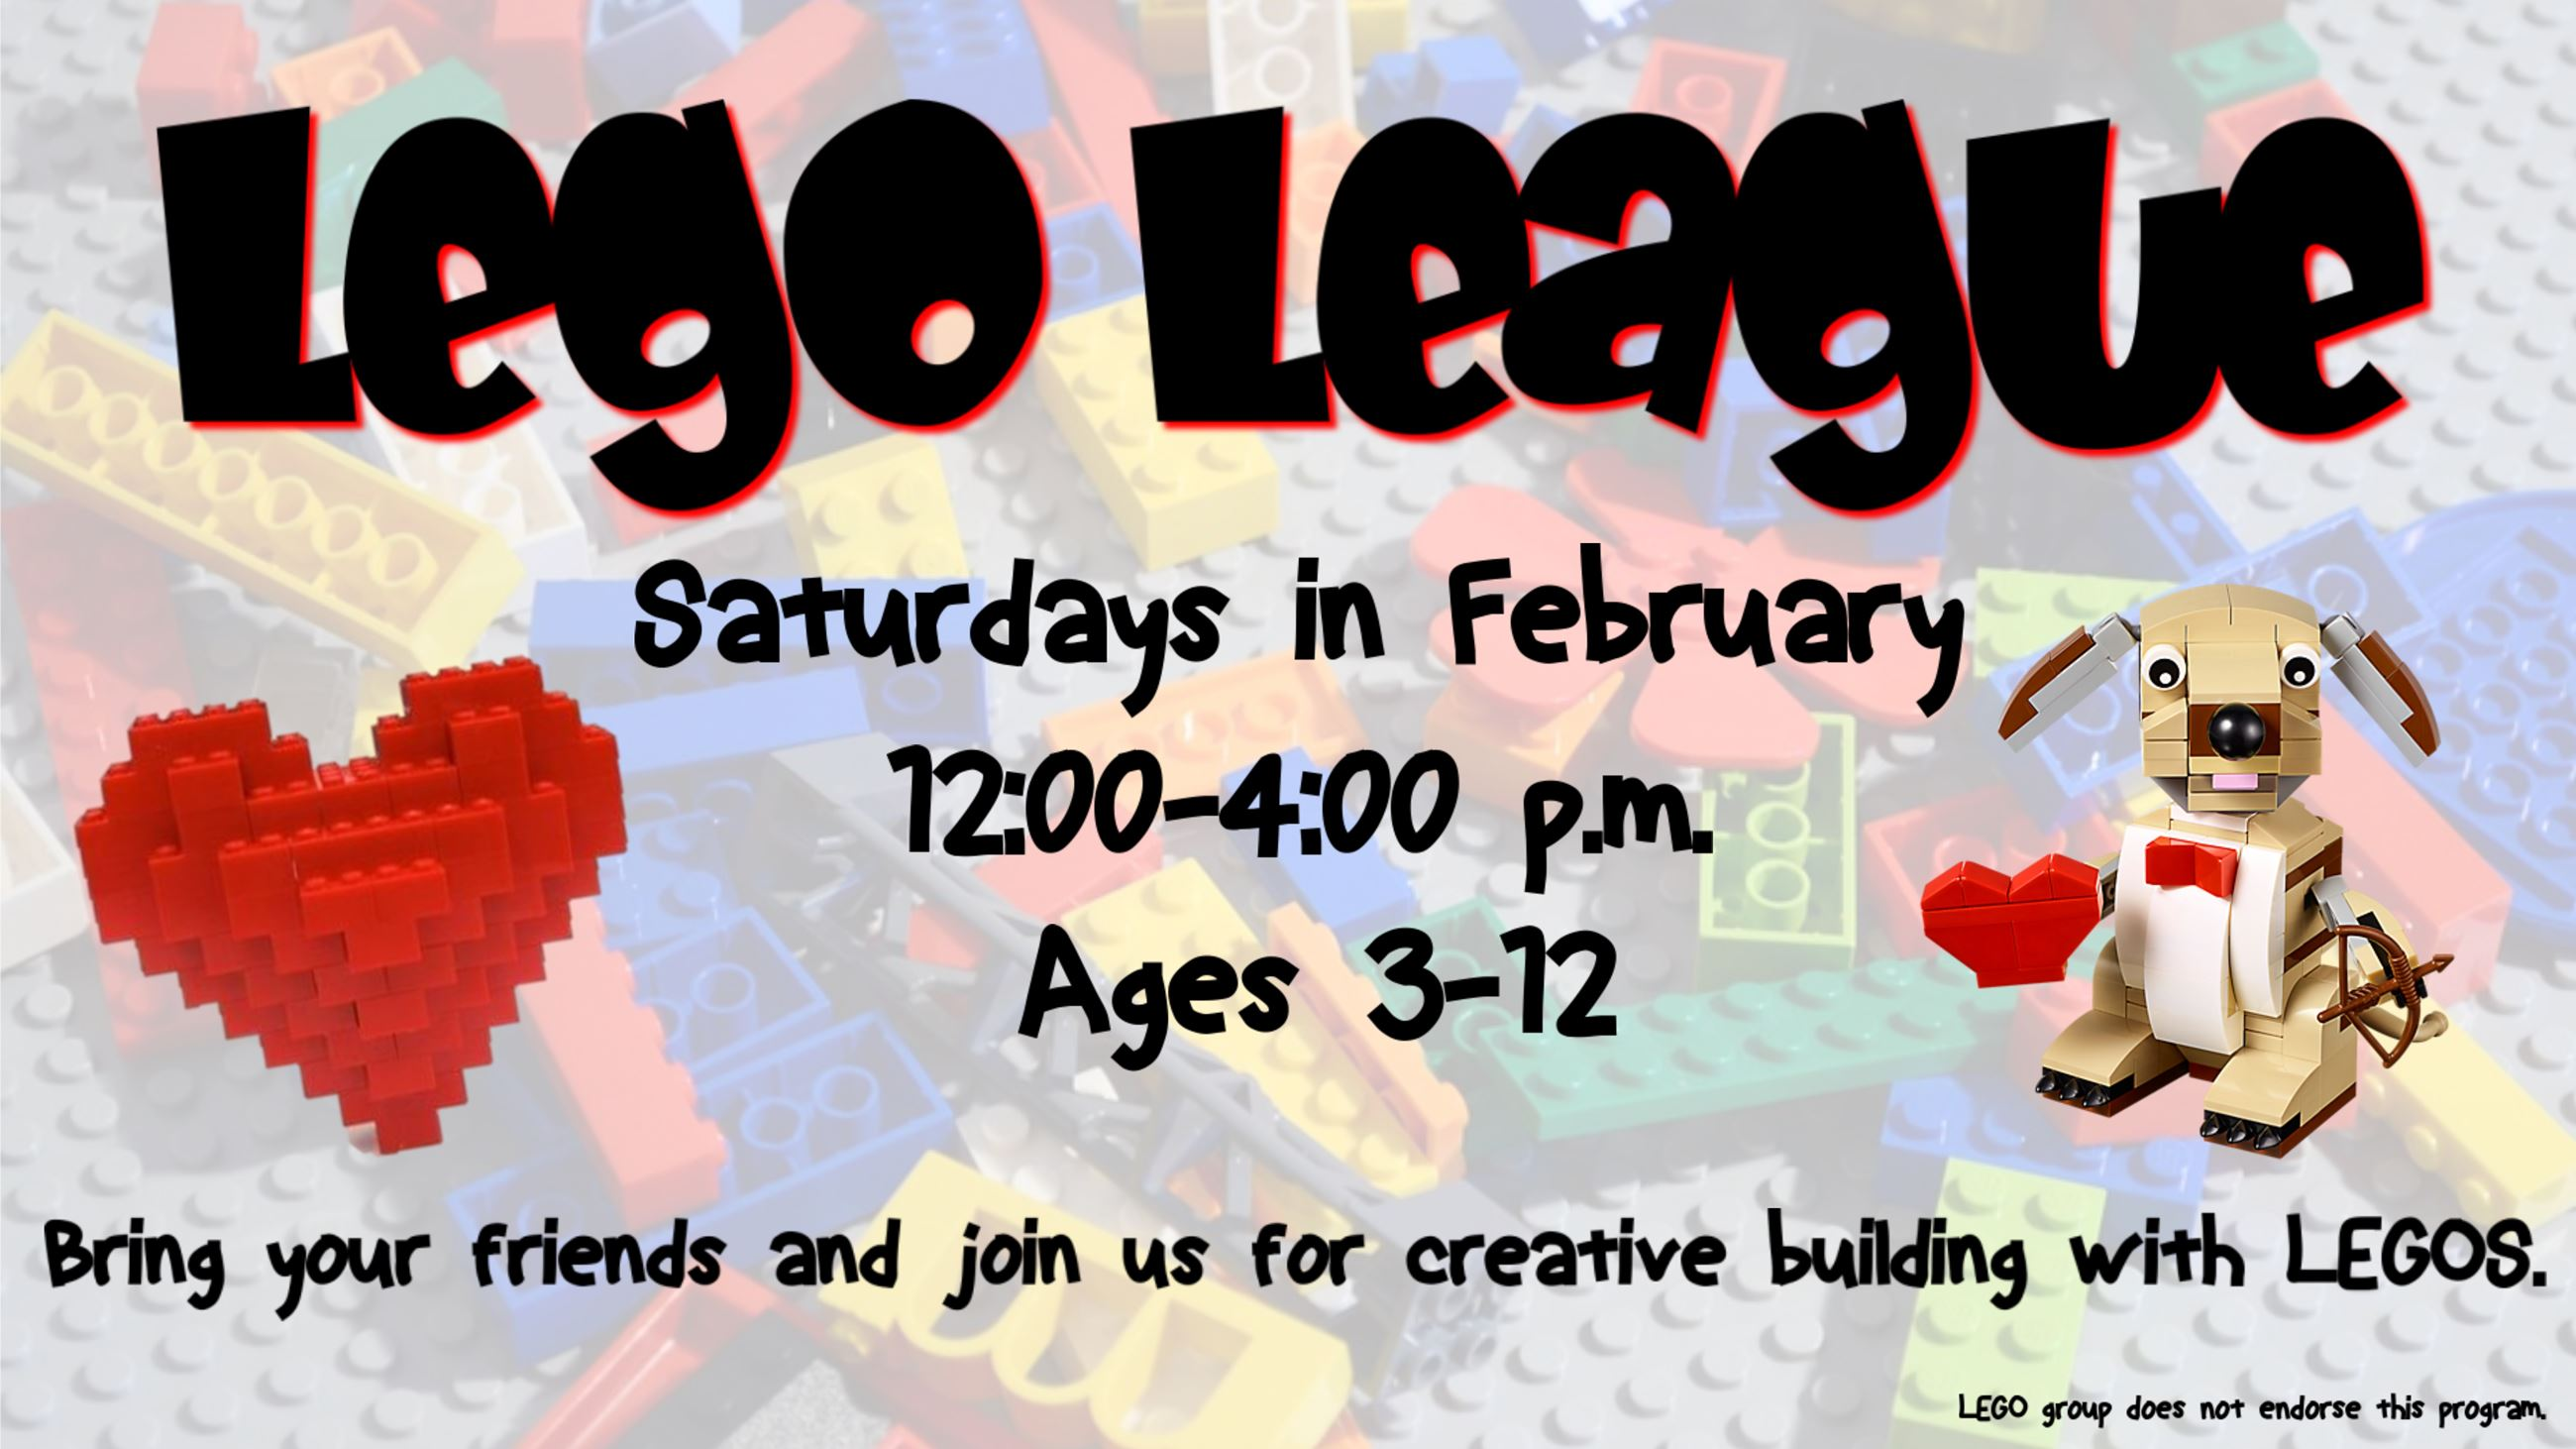 Lego League. Saturdays in February from 12 to 4 p.m. Ages 3 thru 12.